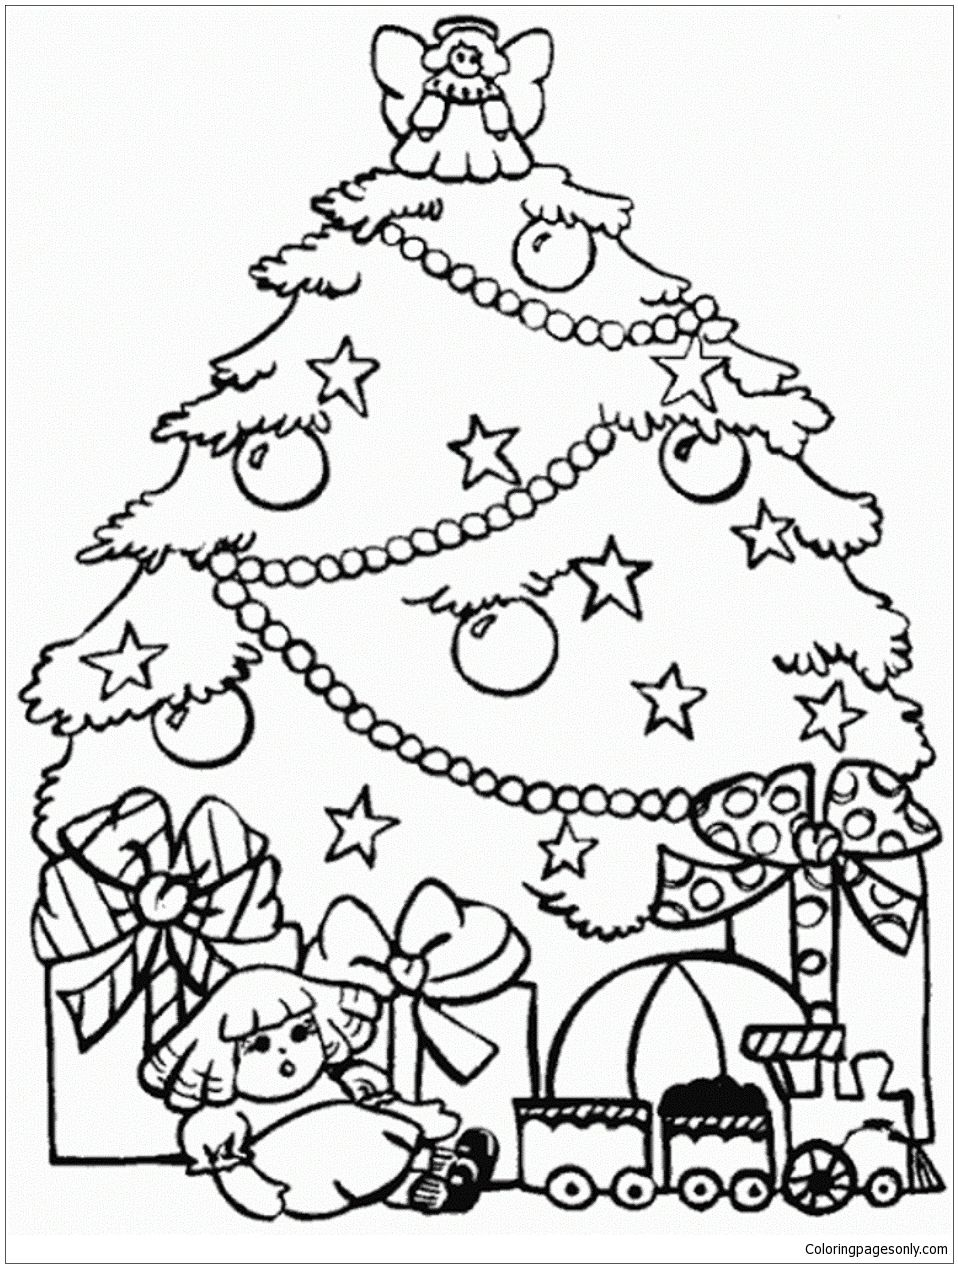 Presents And Christmas Tree Coloring Page